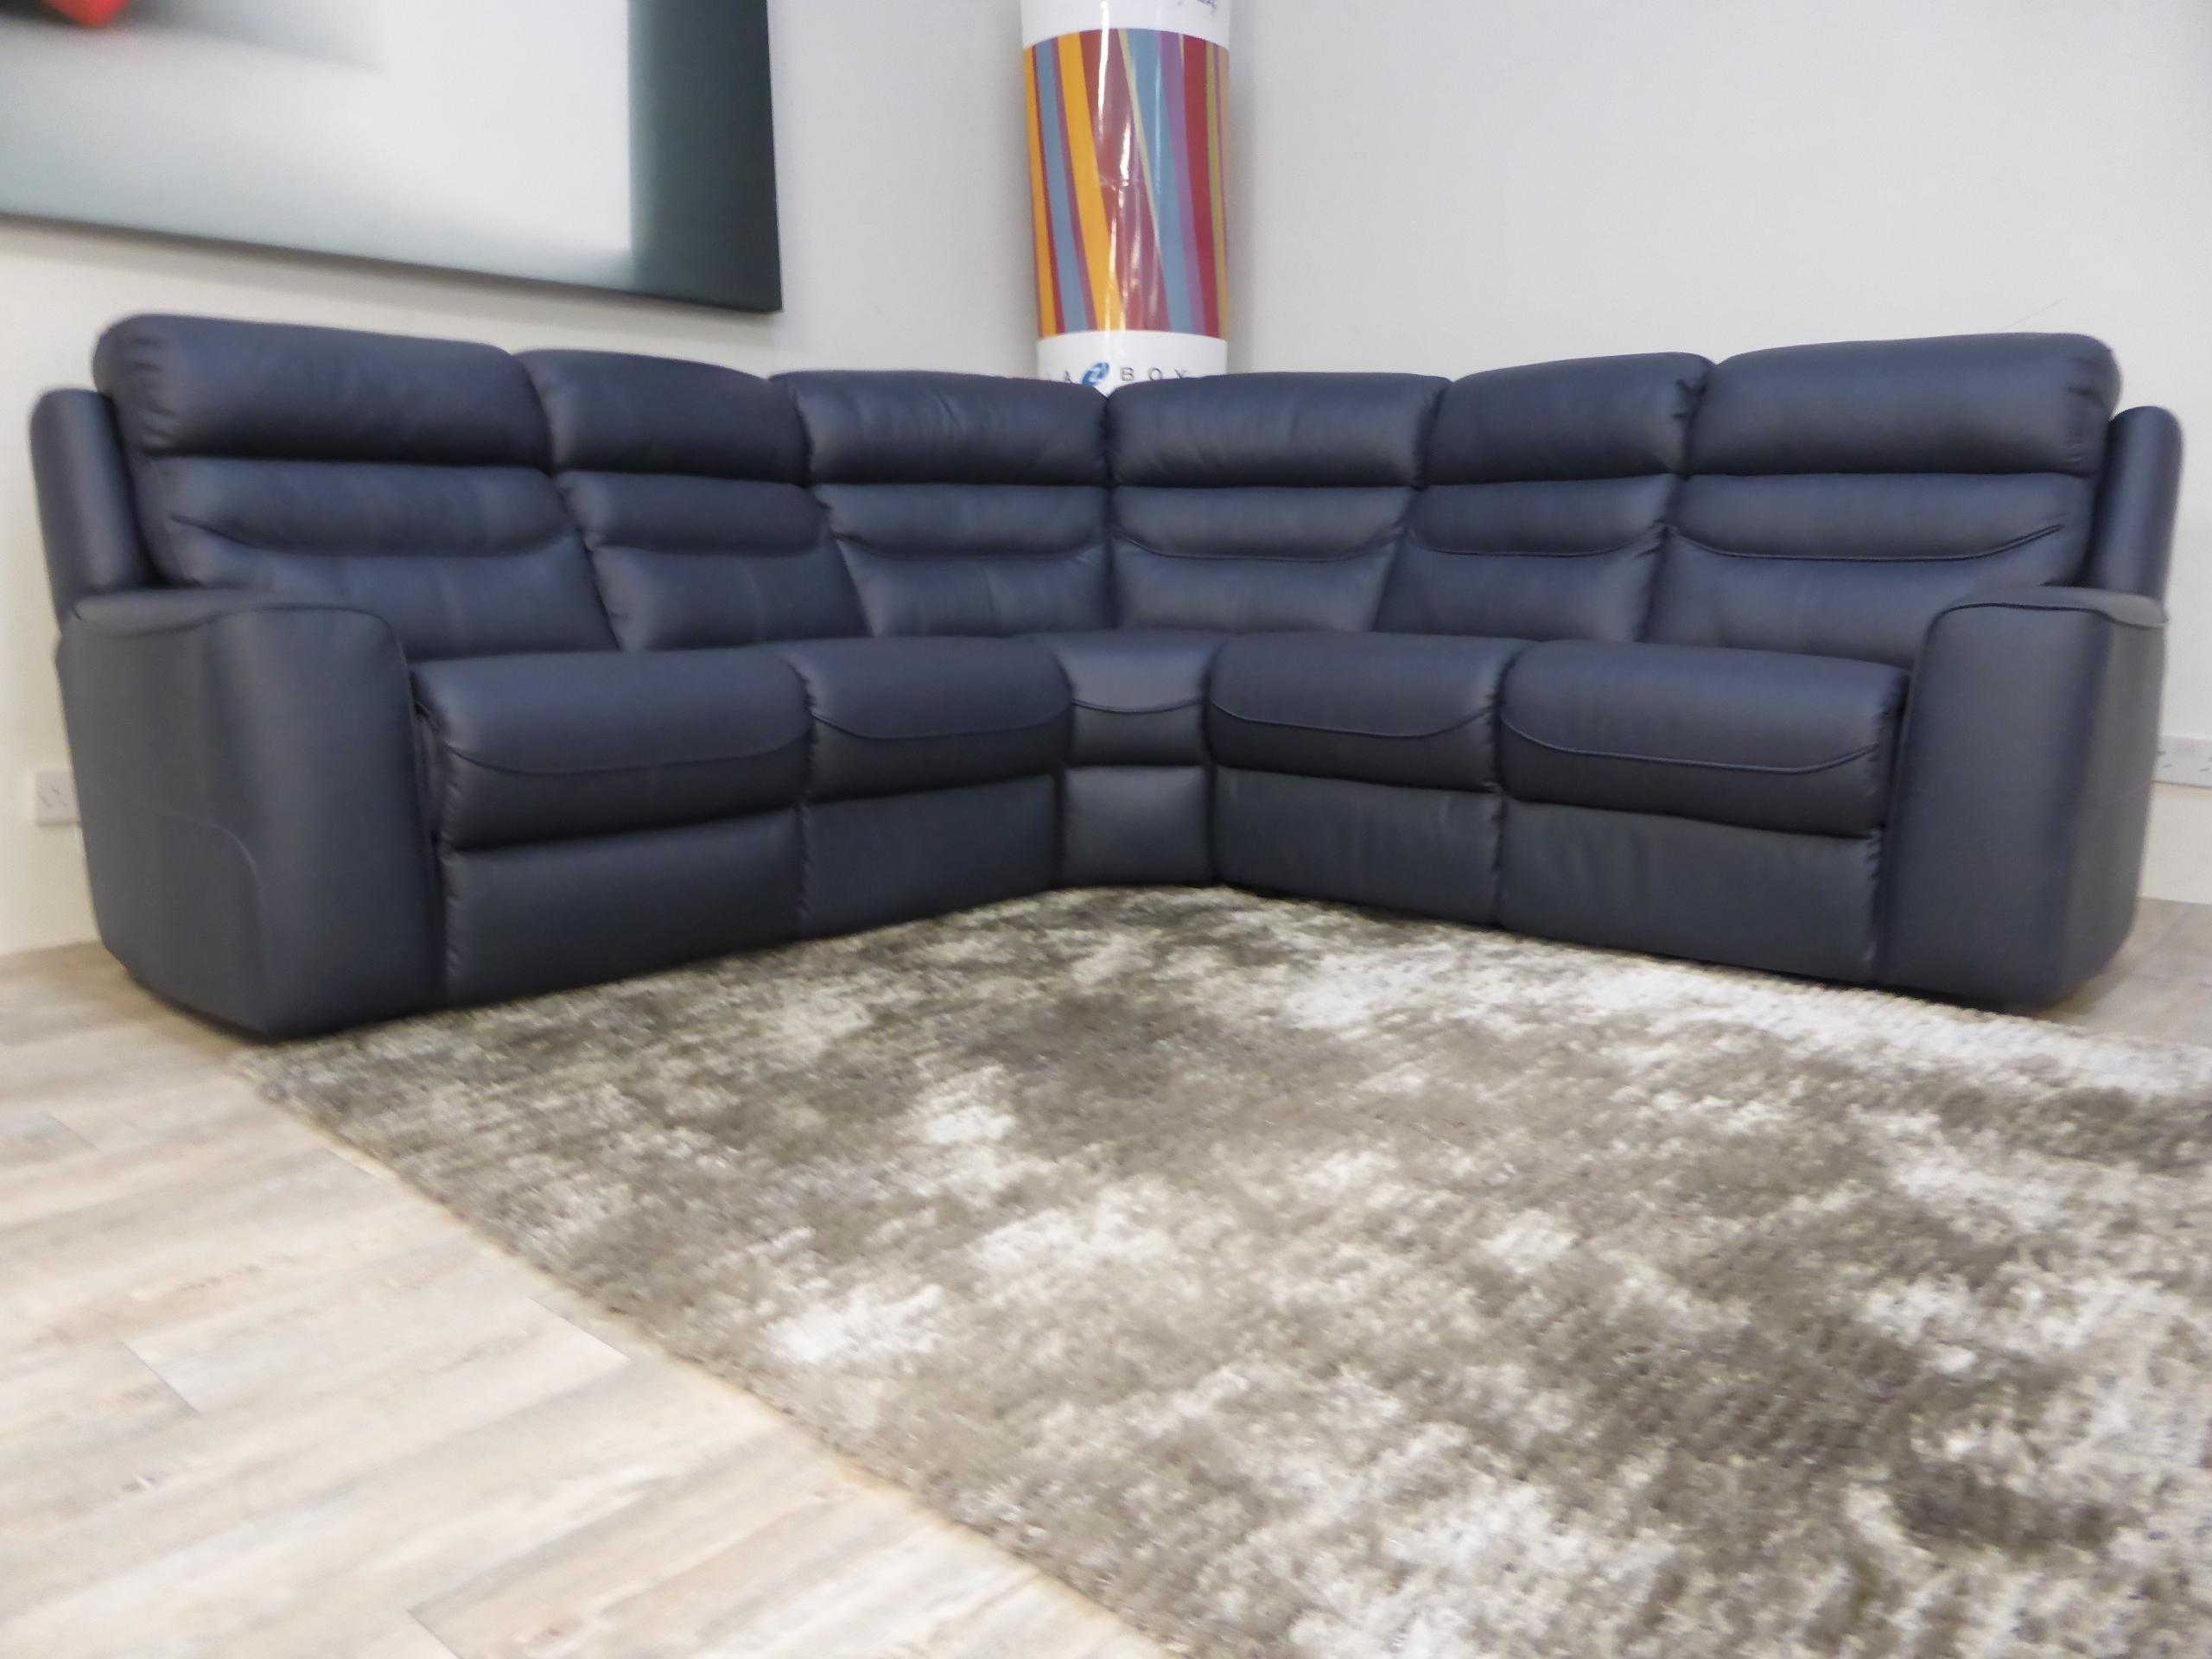 Lazyboy Sofa And Bed Gallery | Furnimax Brands Outlet With Lazy Boy Manhattan Sofas (View 6 of 21)